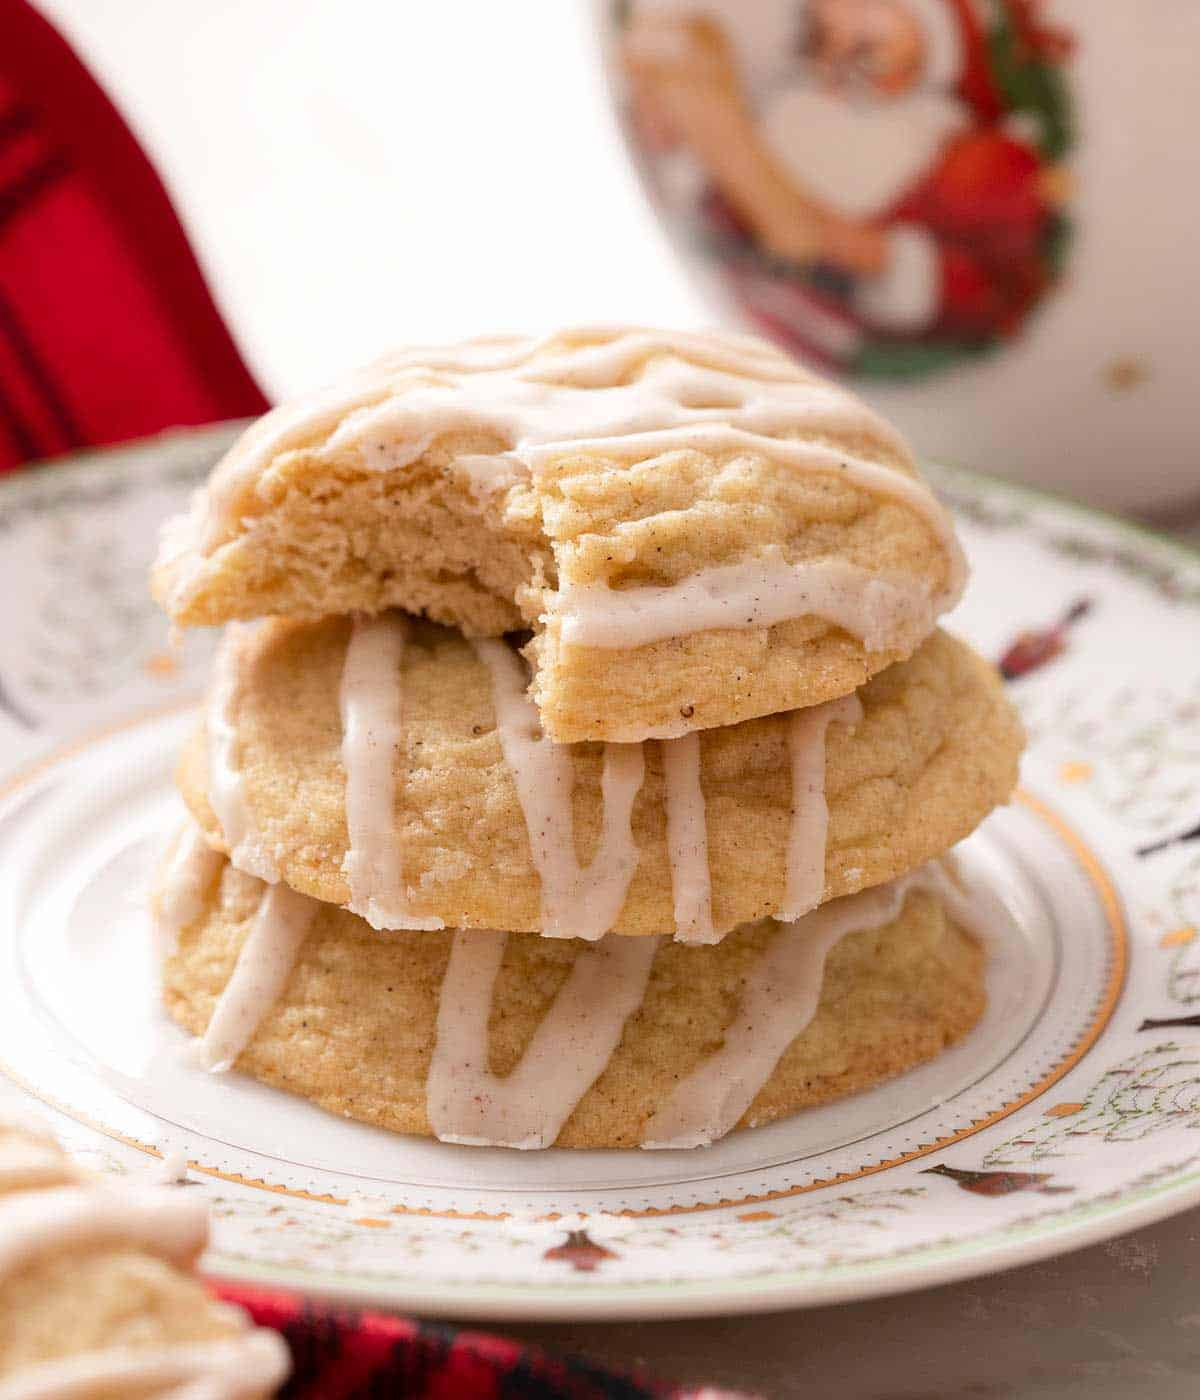 A photo of eggnog cookies stacked on top of each other and one with a bite out